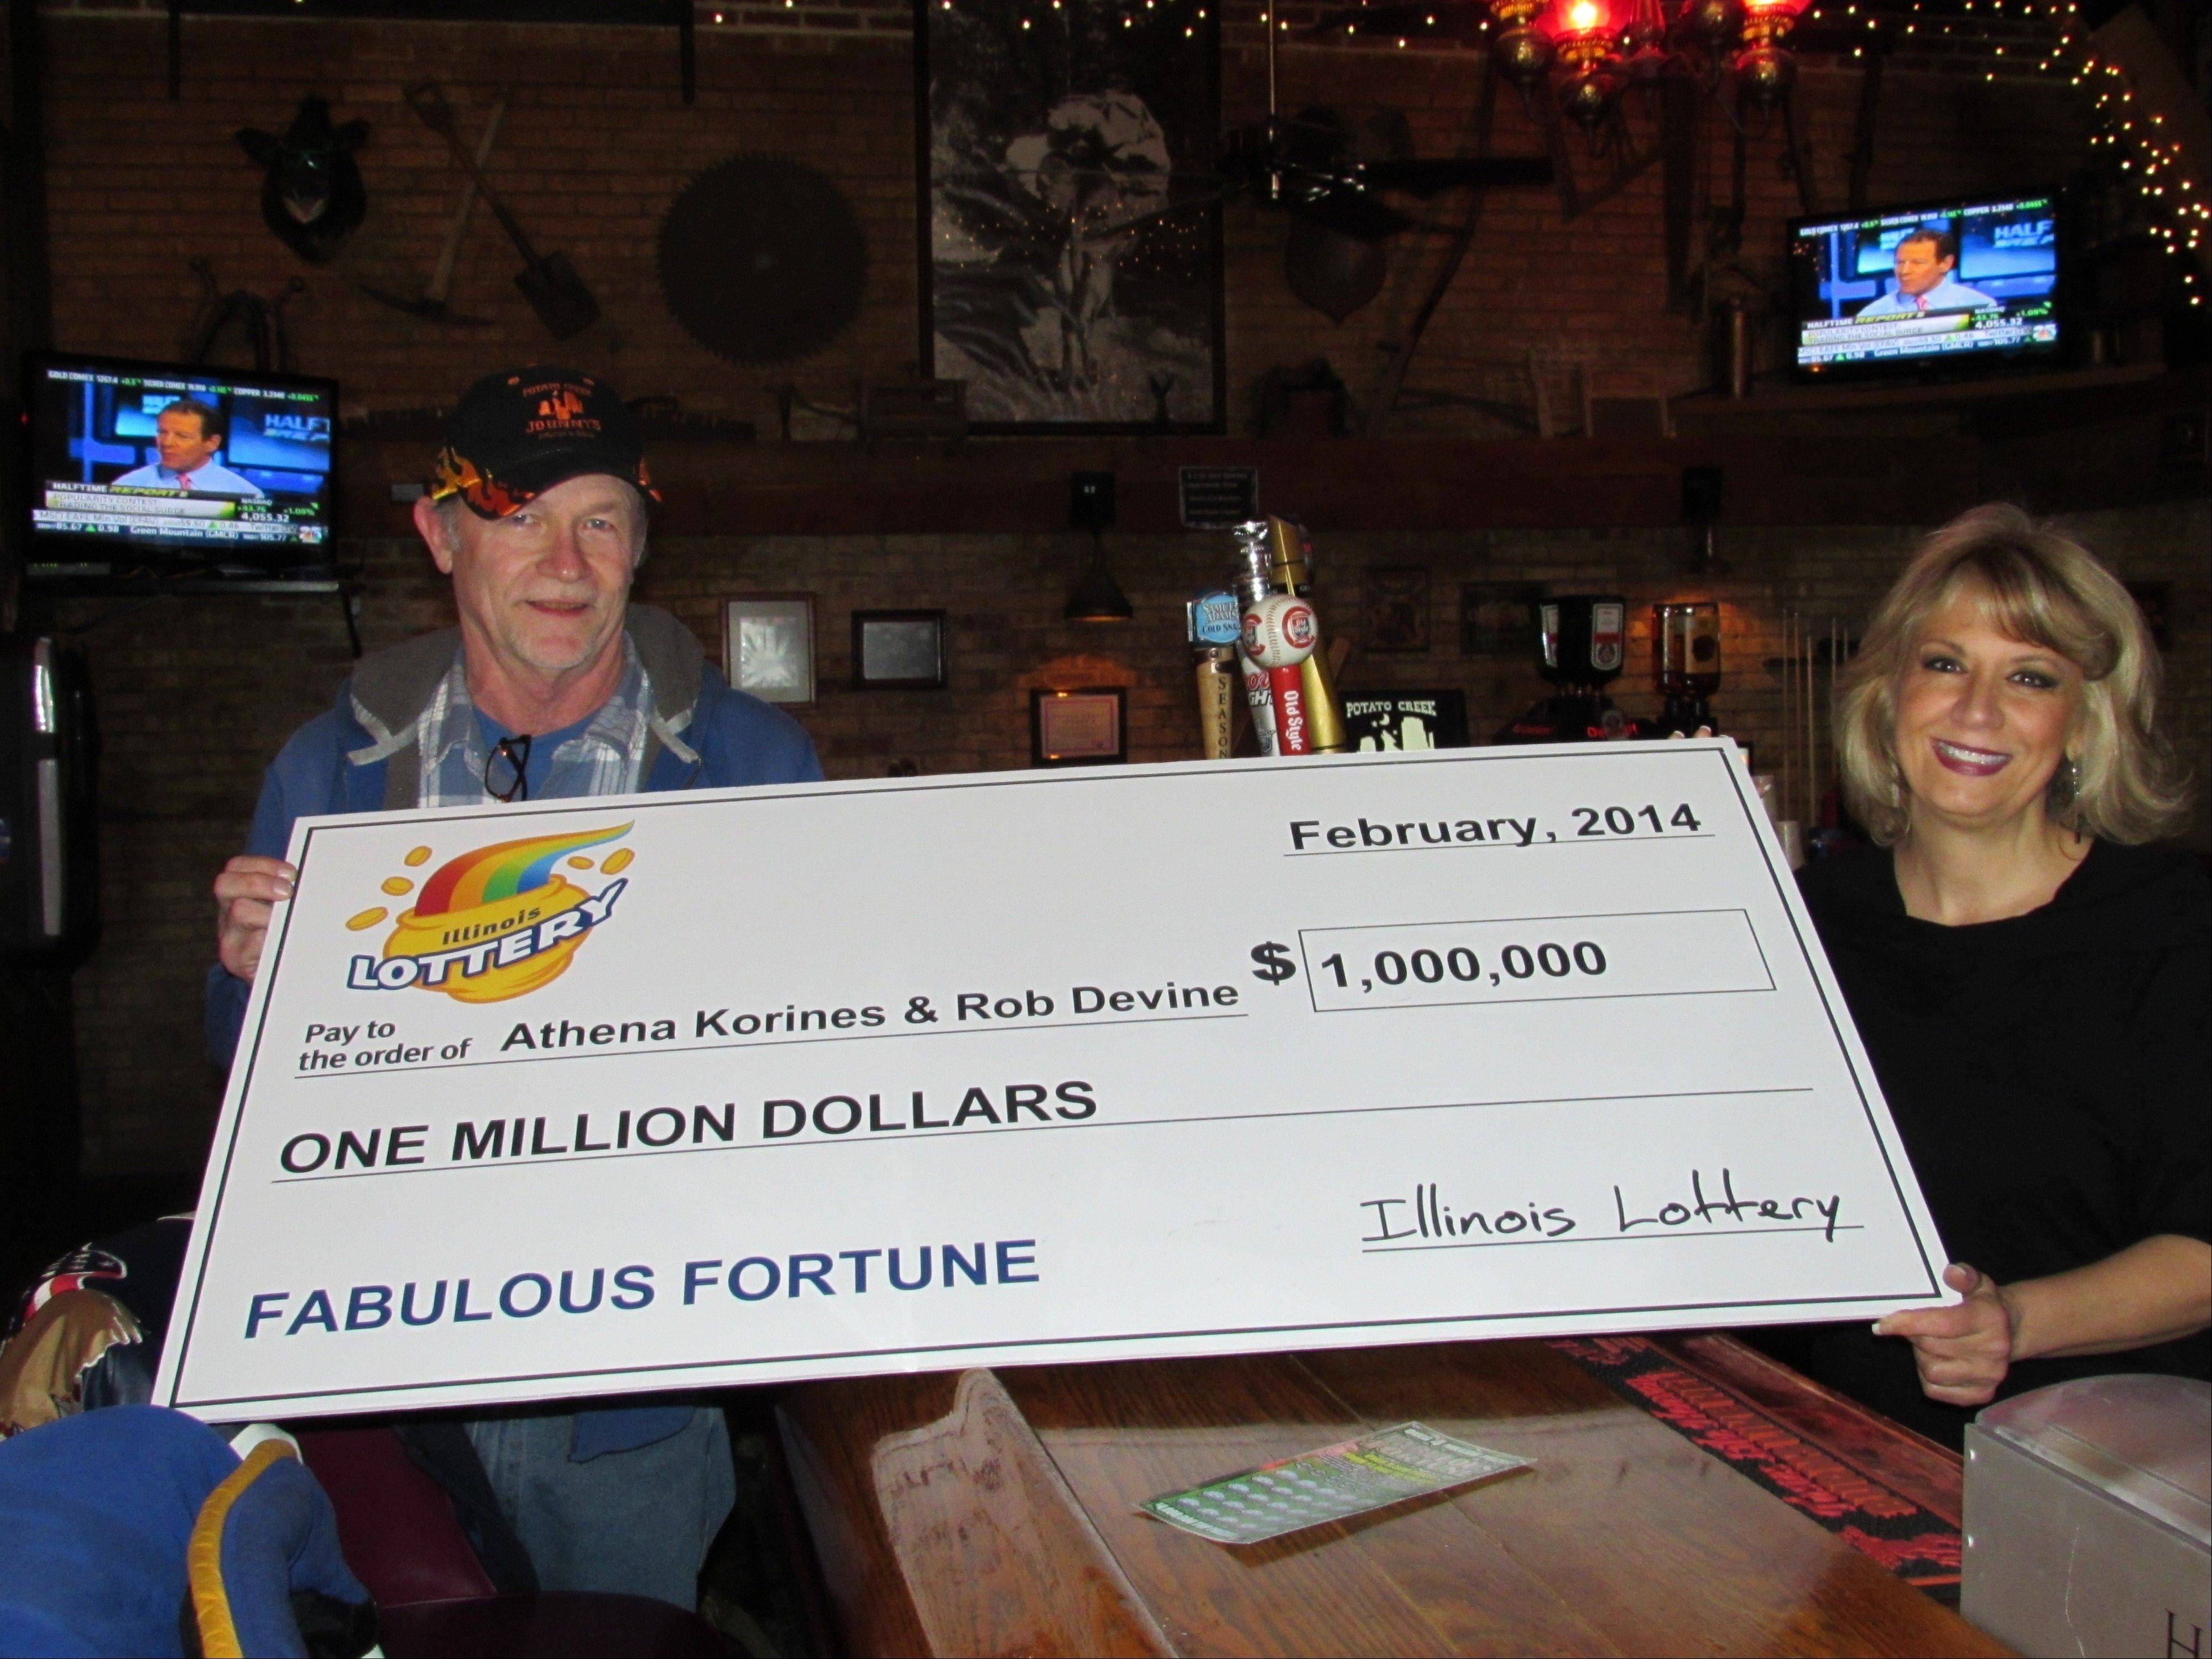 Rob Devine of Des Plaines and Athena Korines of Elk Grove Village won $1 million Jan. 24 with a scratch-off lottery ticket. They regularly scratch off tickets together at the bar where Korines works in Glenview.